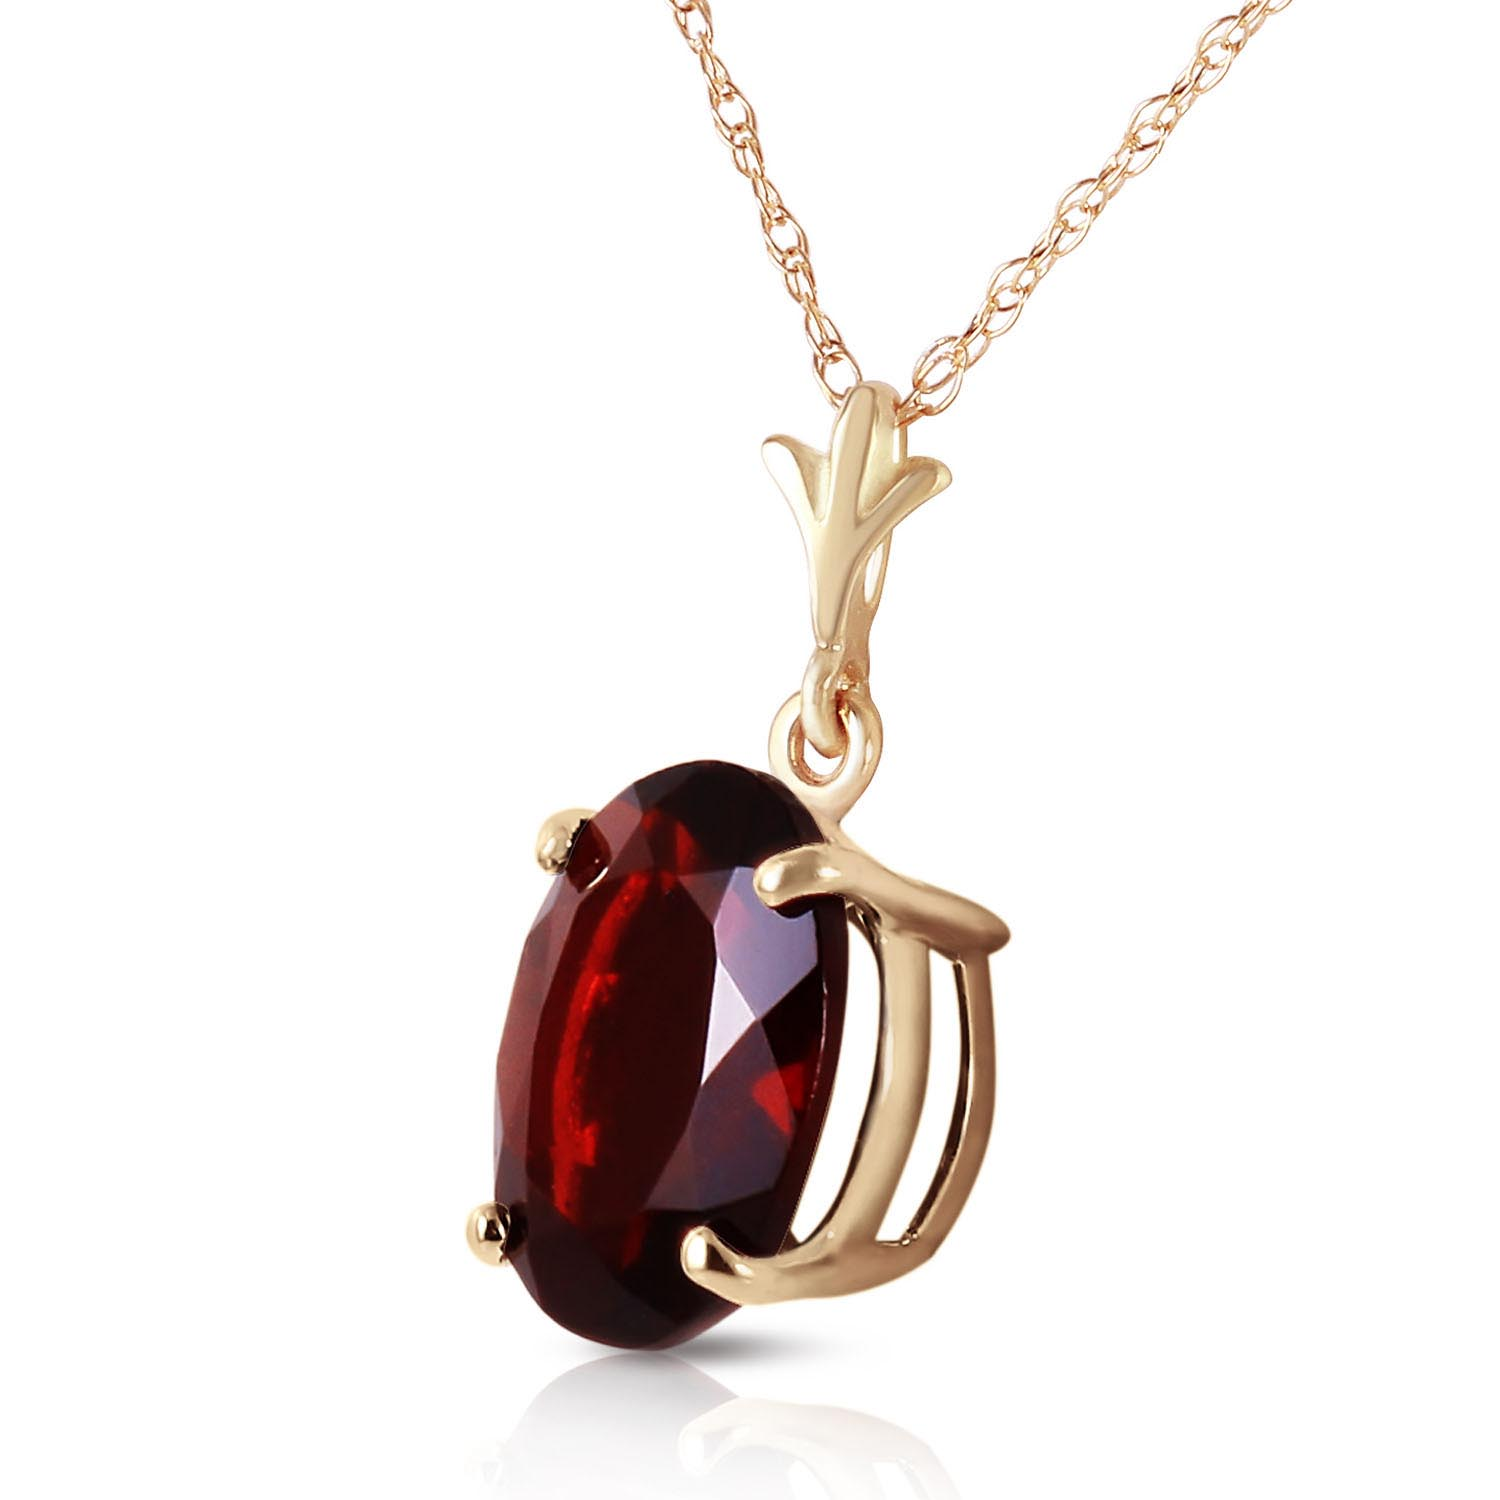 Oval Cut Garnet Pendant Necklace 3.12ct in 9ct Gold